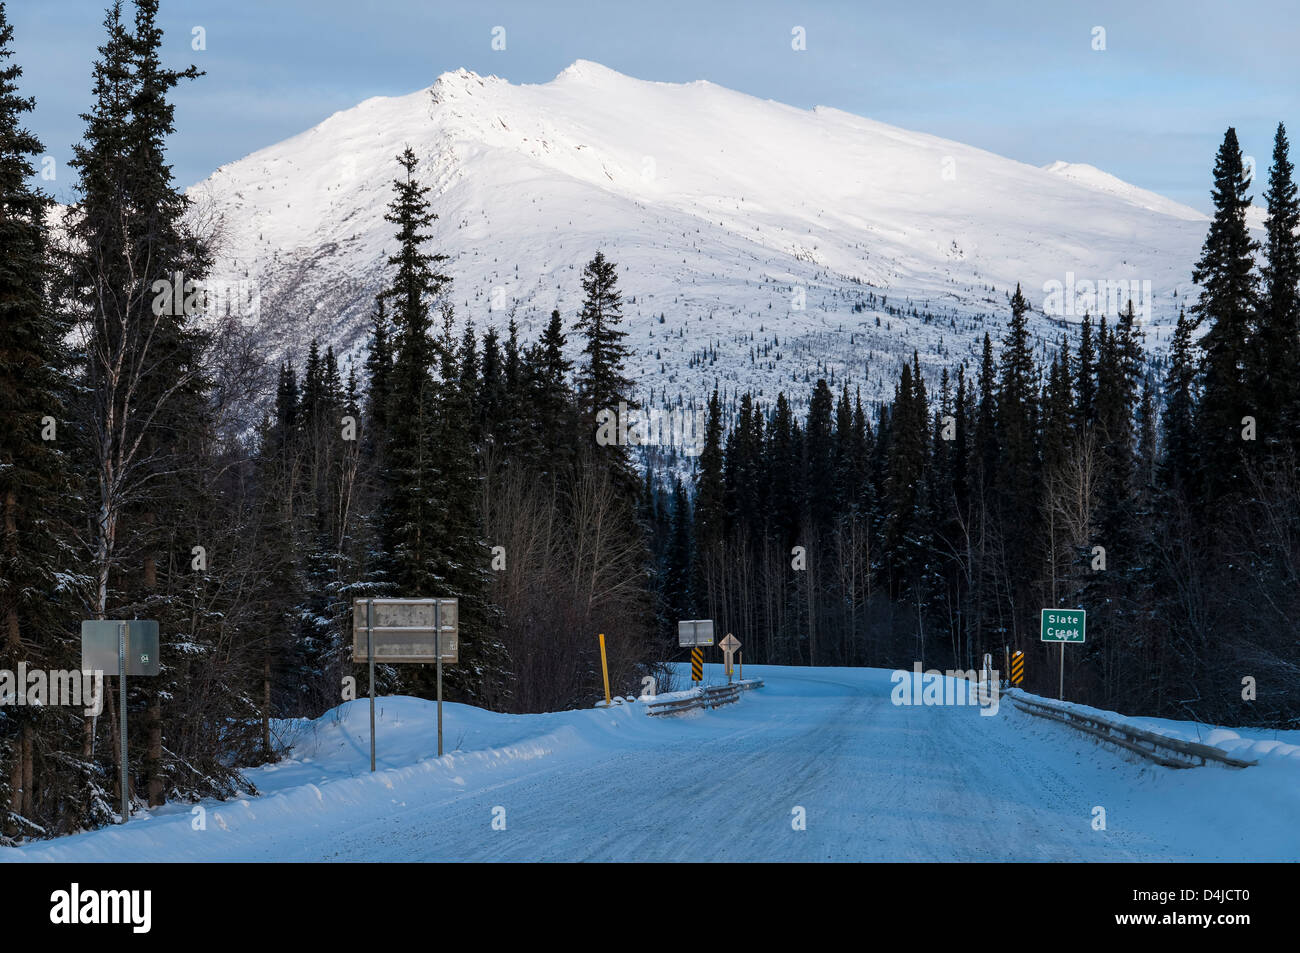 Looking south on the Dalton Highway, North Slope Haul Road, Coldfoot, Alaska. - Stock Image